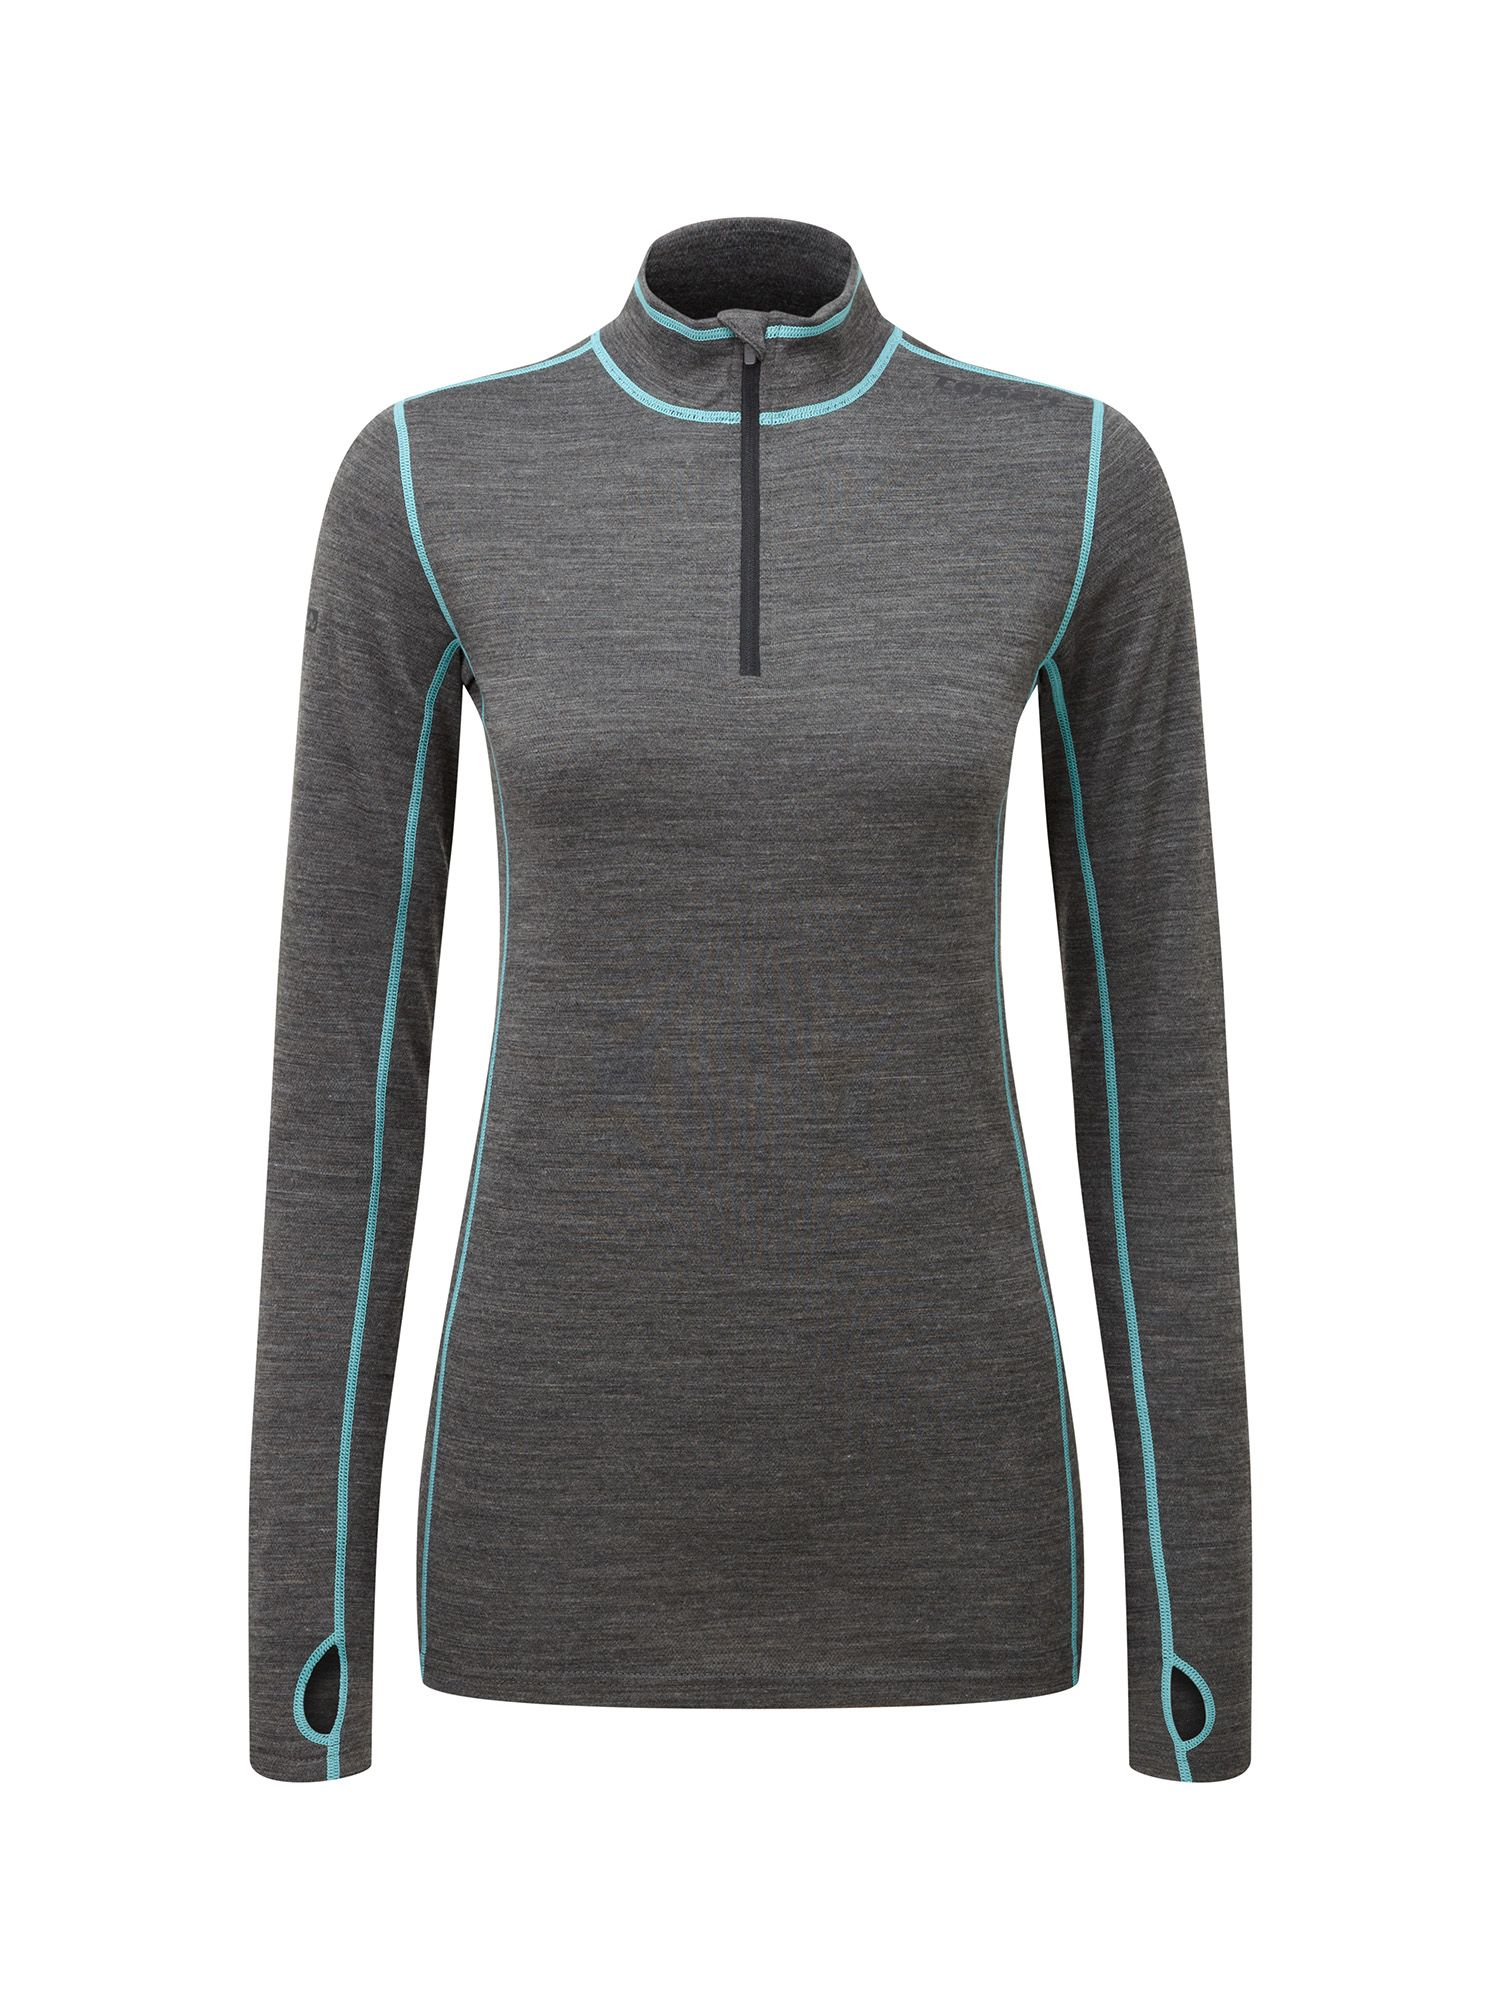 Tog 24 Creation Womens TCZ Merino Zip Neck, Grey